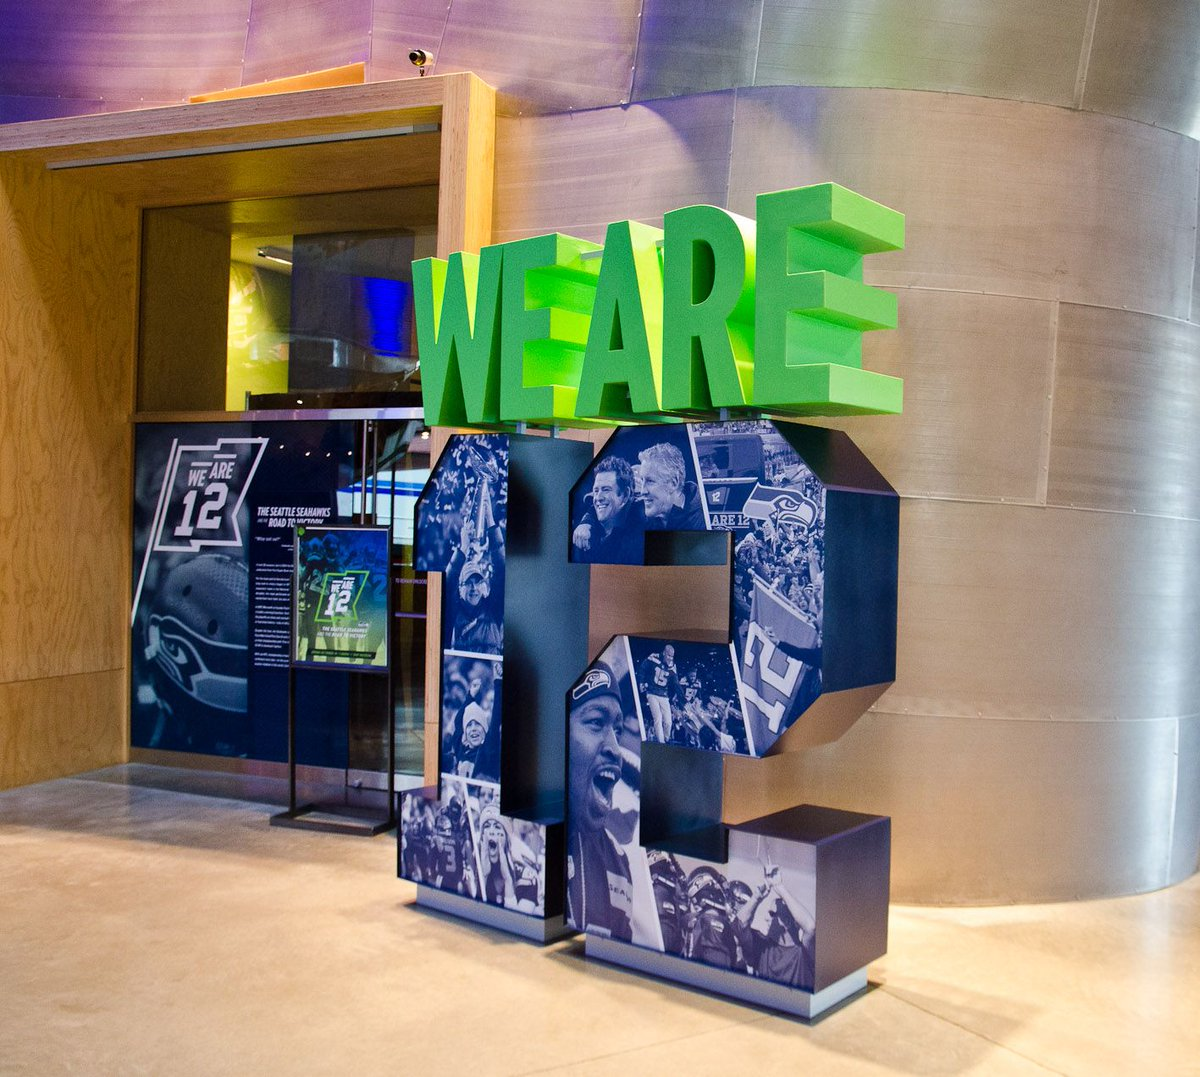 Happy #BlueFriday to our fellow @Seahawks fans! Did you get the chance visit our #WeAre12 exhibition in 2014?